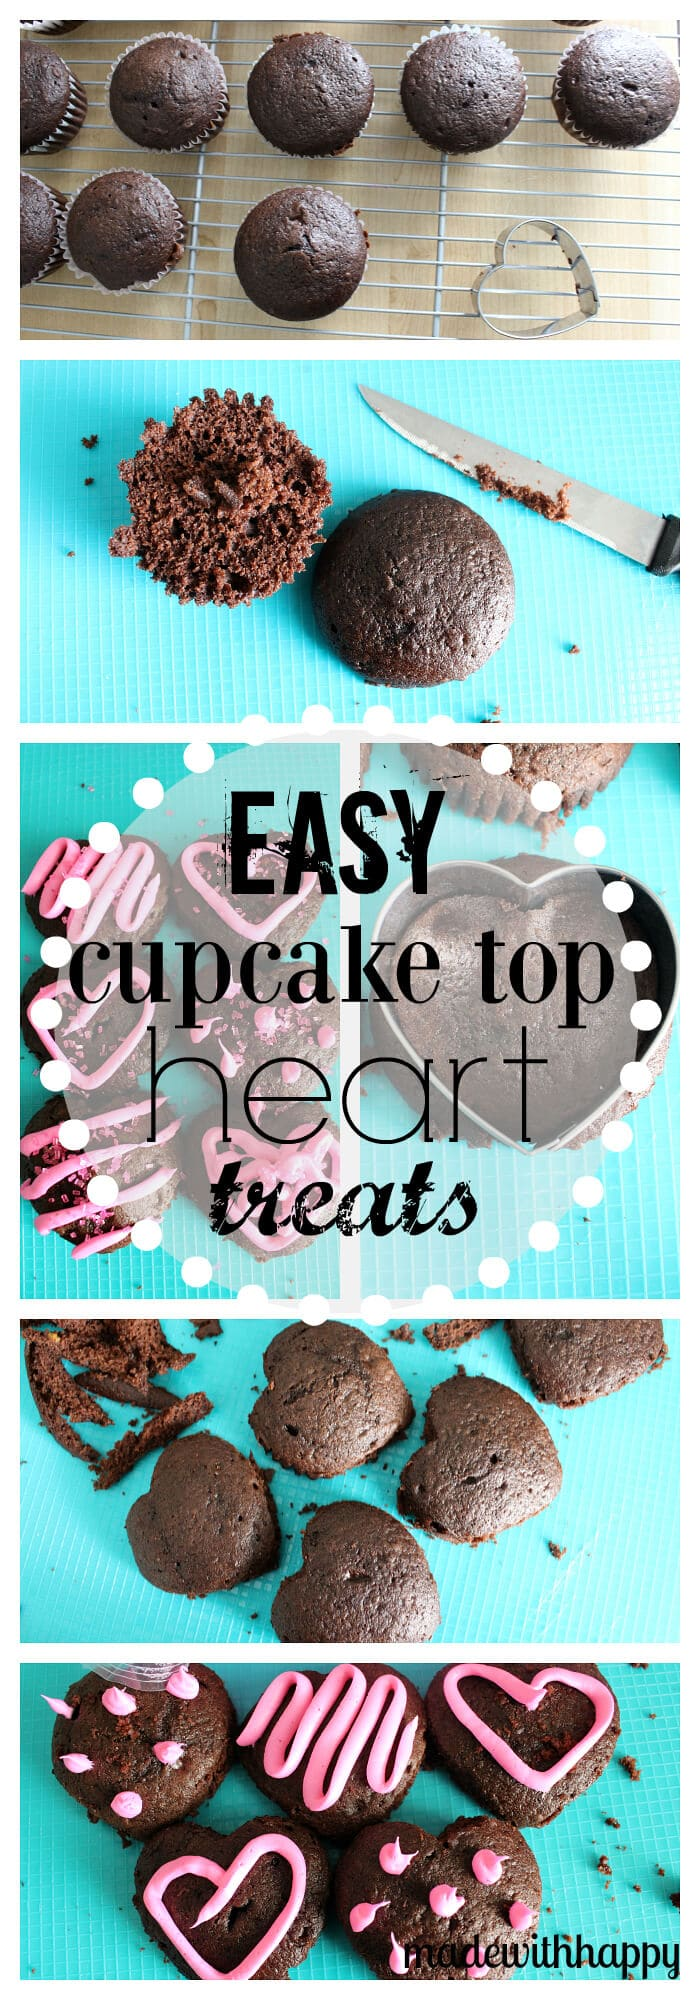 Easy Cupcake Top Heart Treats | Valentines Dessert Ideas | Heart Cupcakes | www.madewithhappy.com